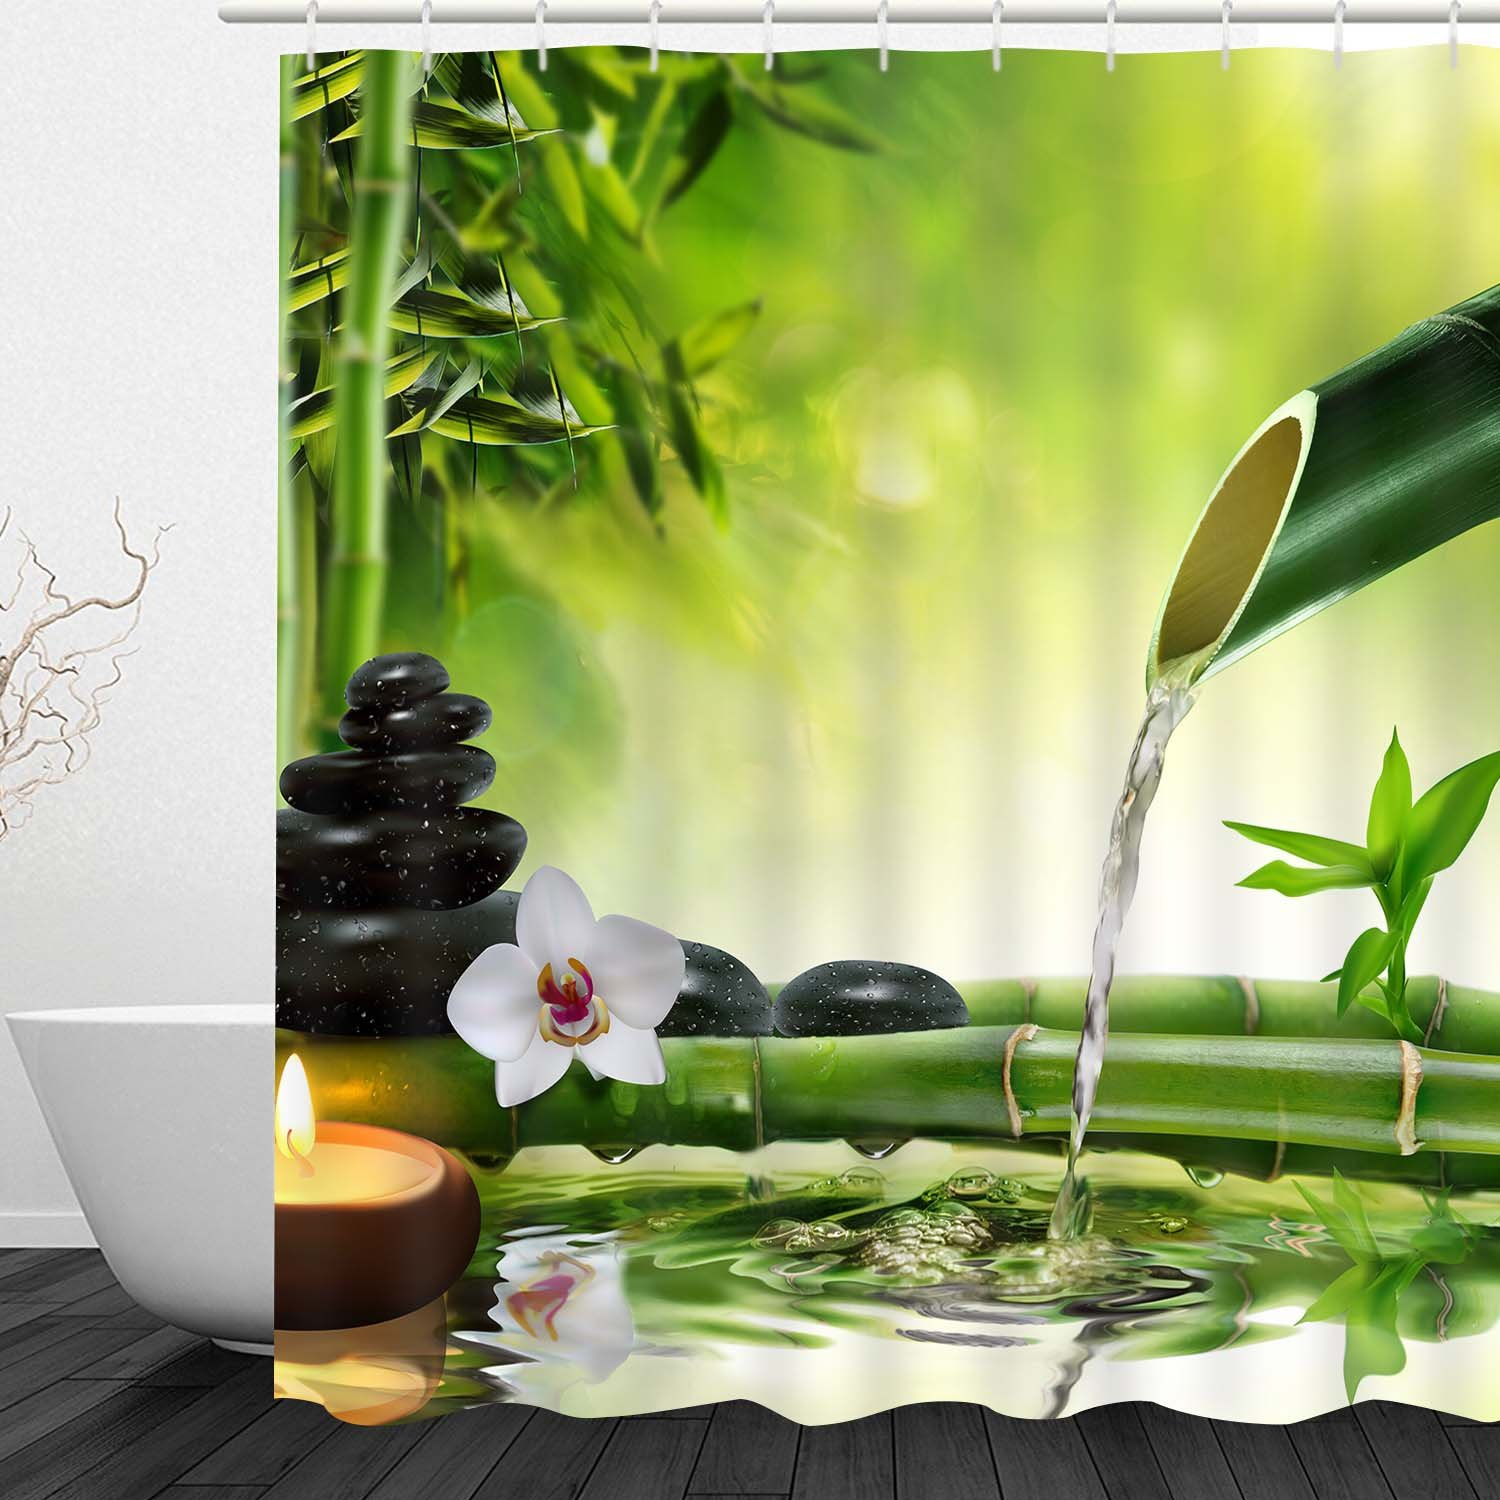 "Bathroom Shower Curtain Bathroom Curtain Bamboo Water Zen Durable Fabric Bath Curtain Bathroom Accessories Ideas Kitchen Window Curtain with 12 Hooks (Zen Jasmine Bamboo 2, 72"" L × 69"" W)"